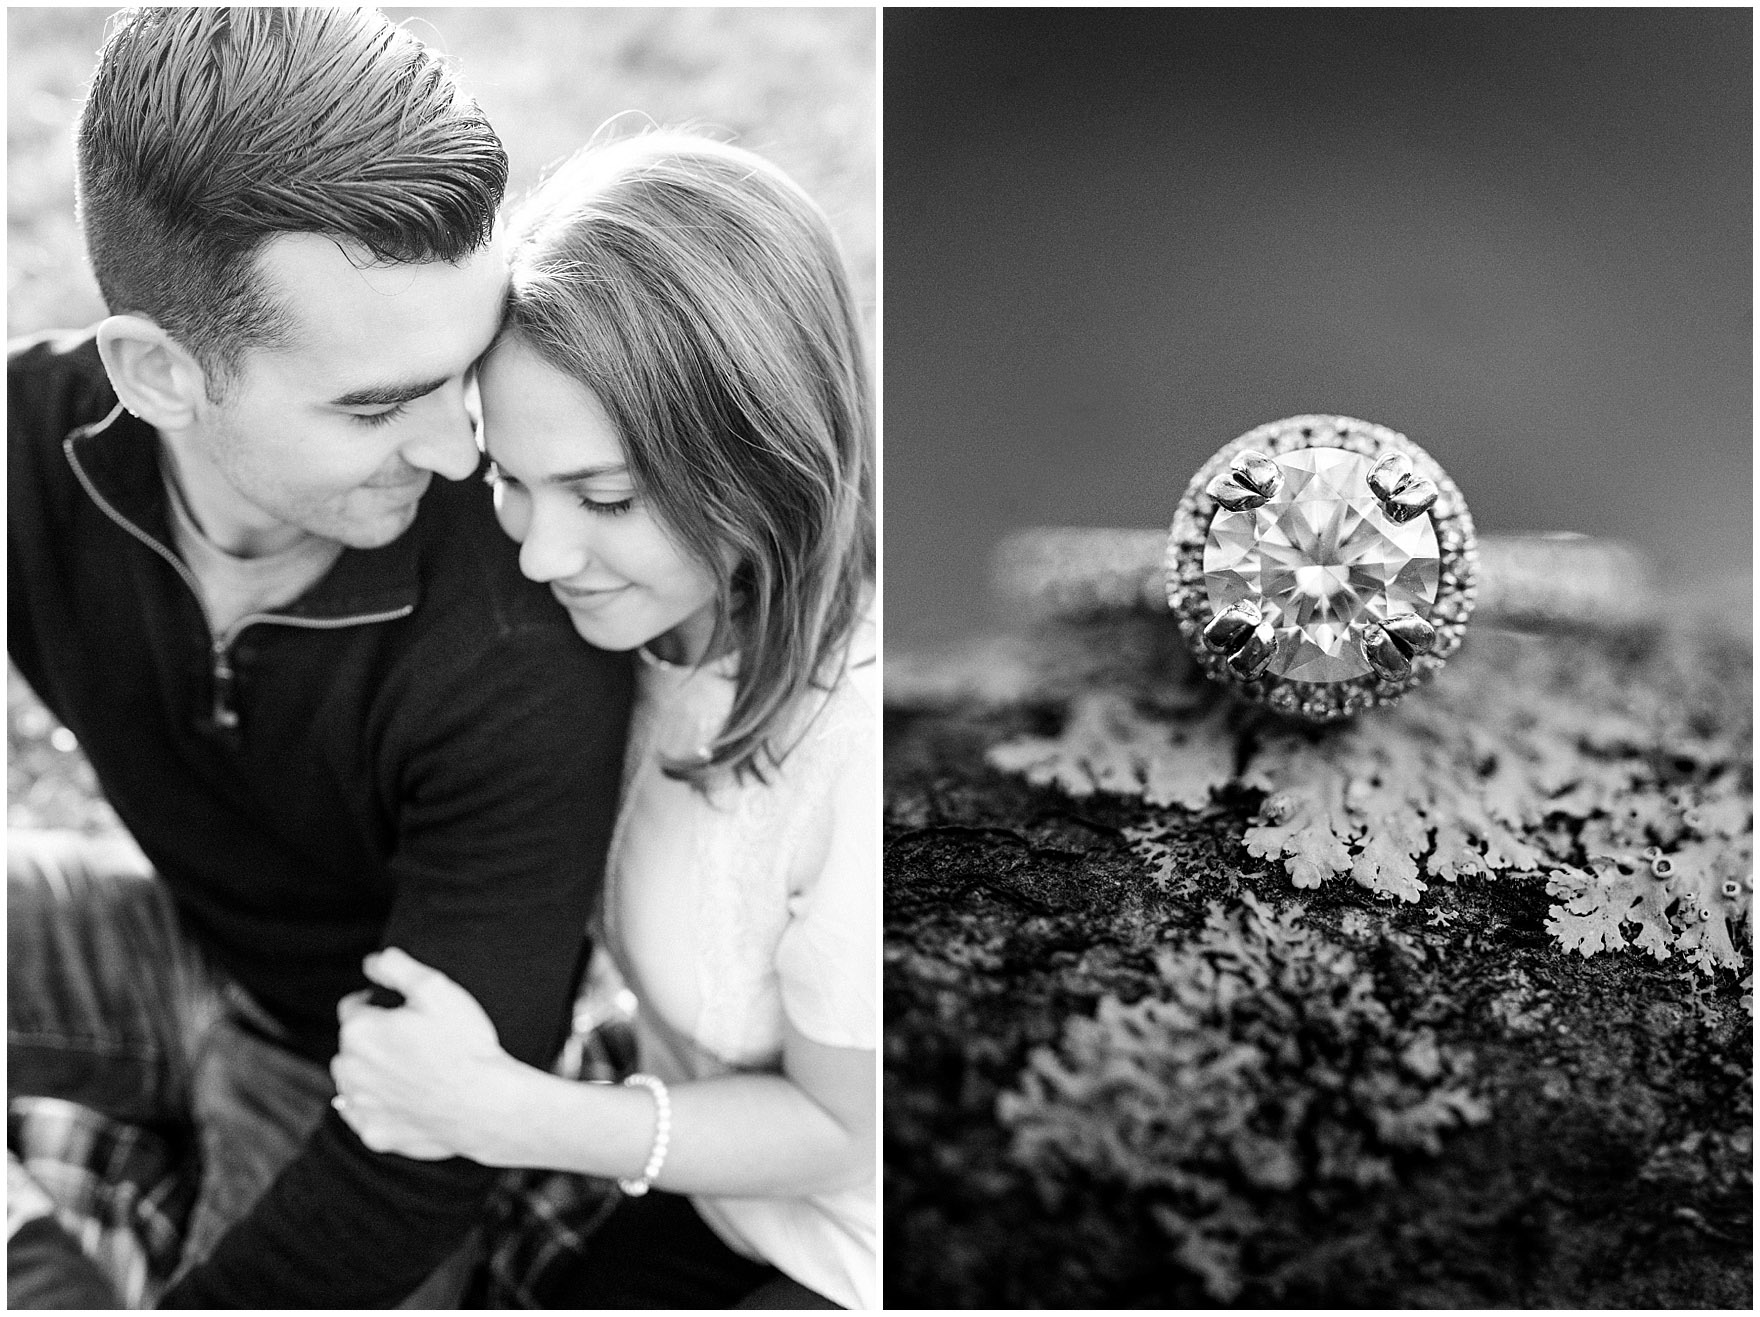 Close up of a diamond engagement ring during a fall woods engagement session.